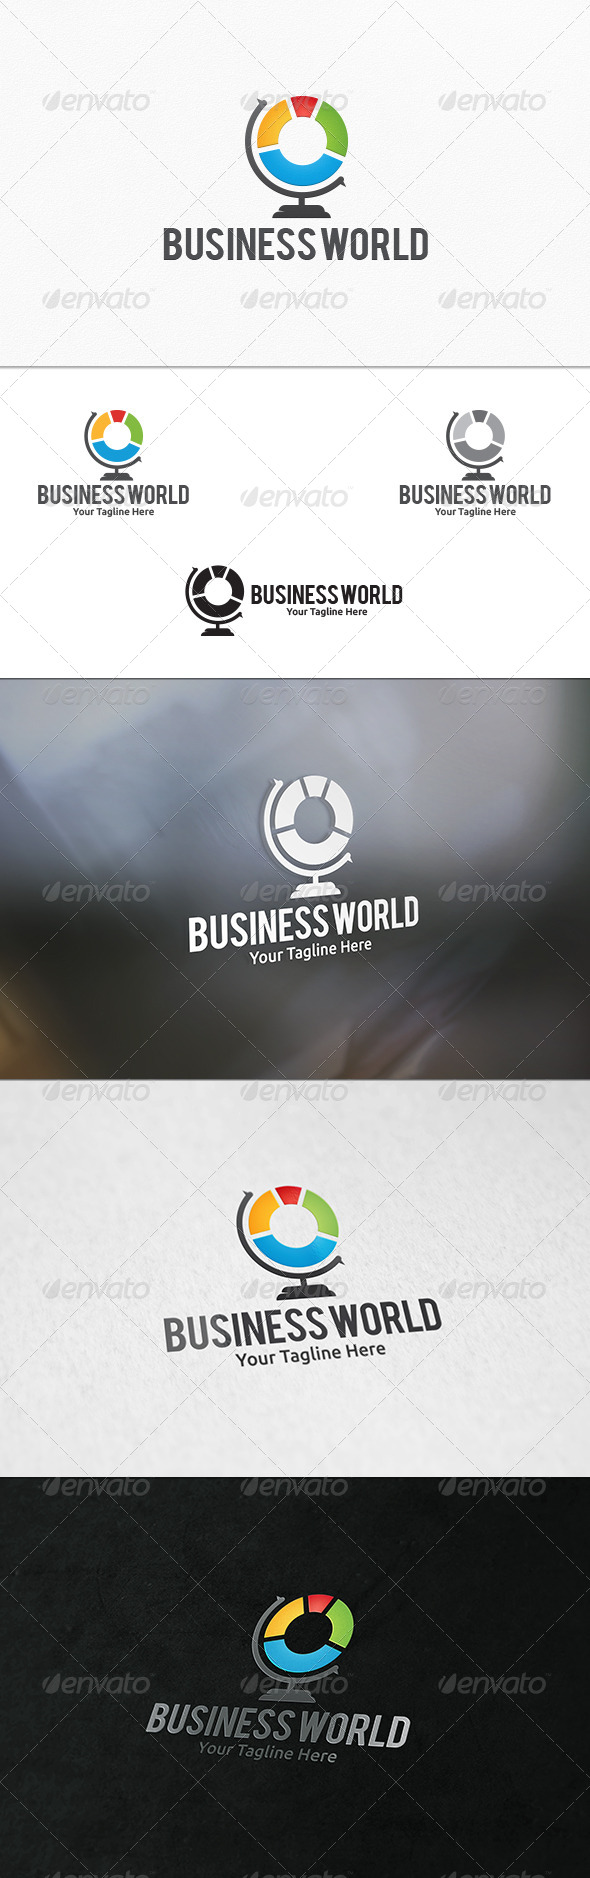 GraphicRiver Business World Logo Template 7497743